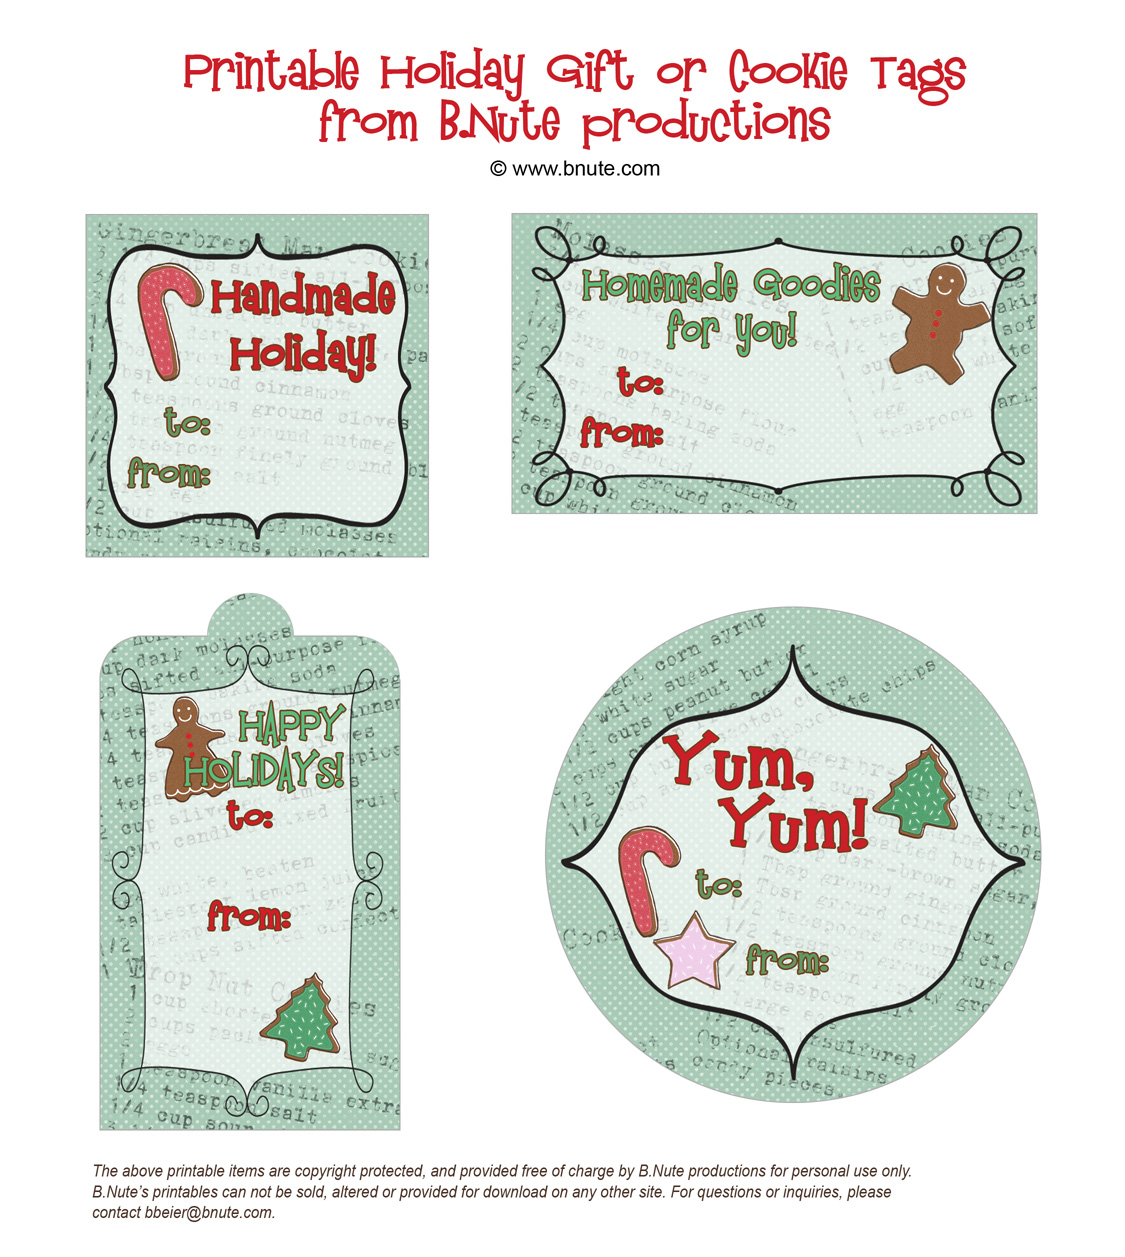 Bnute productions november 2010 free printable holiday gift tags from bte productions negle Choice Image